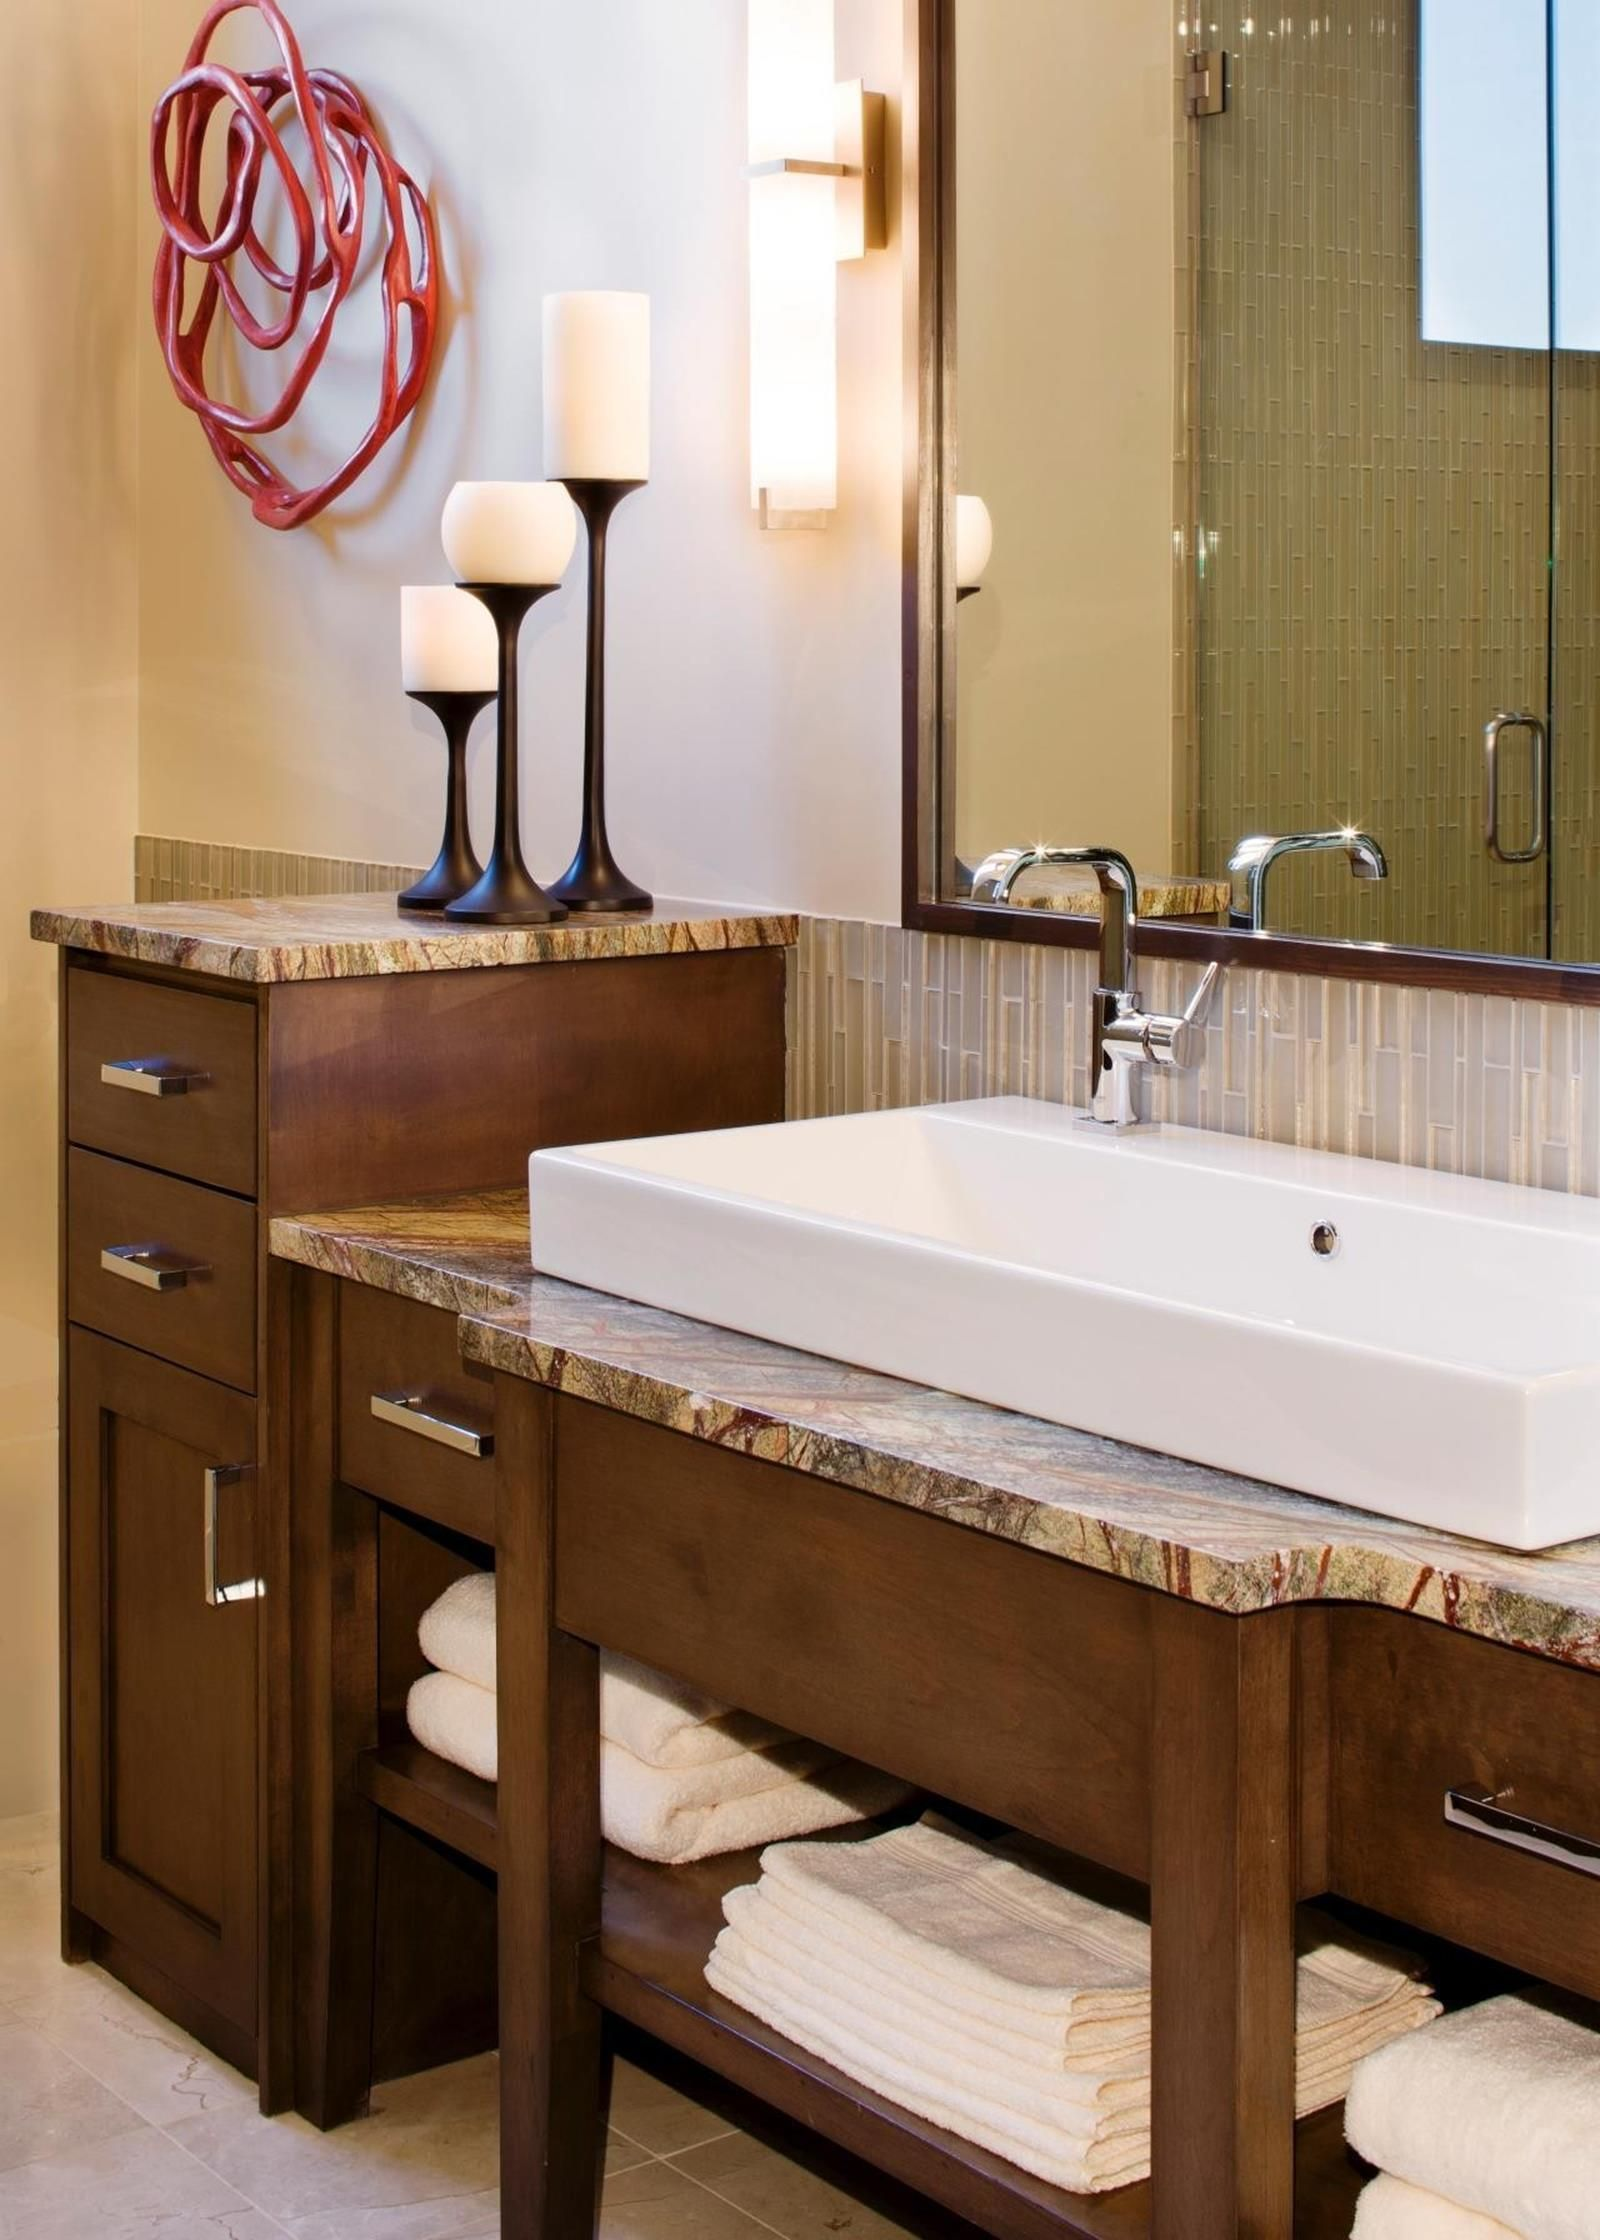 Inexpensive Bathroom Vanity With Farmhouse Sink 30